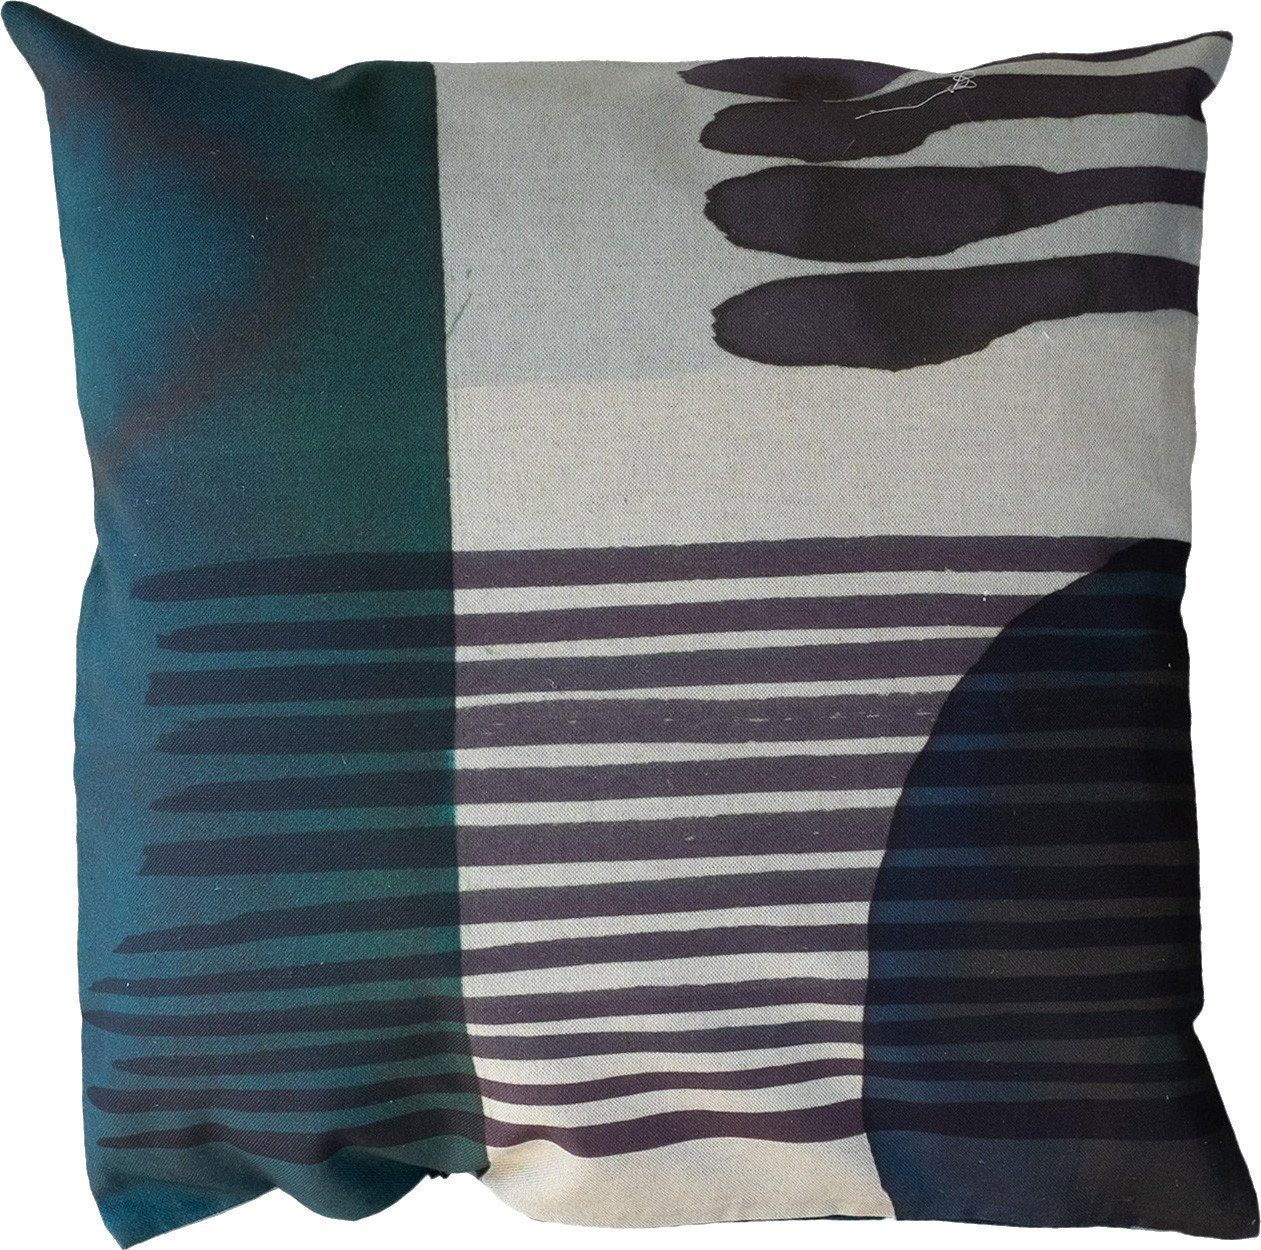 Niwa Decorative Pillowcase by A. Kiliś for Most